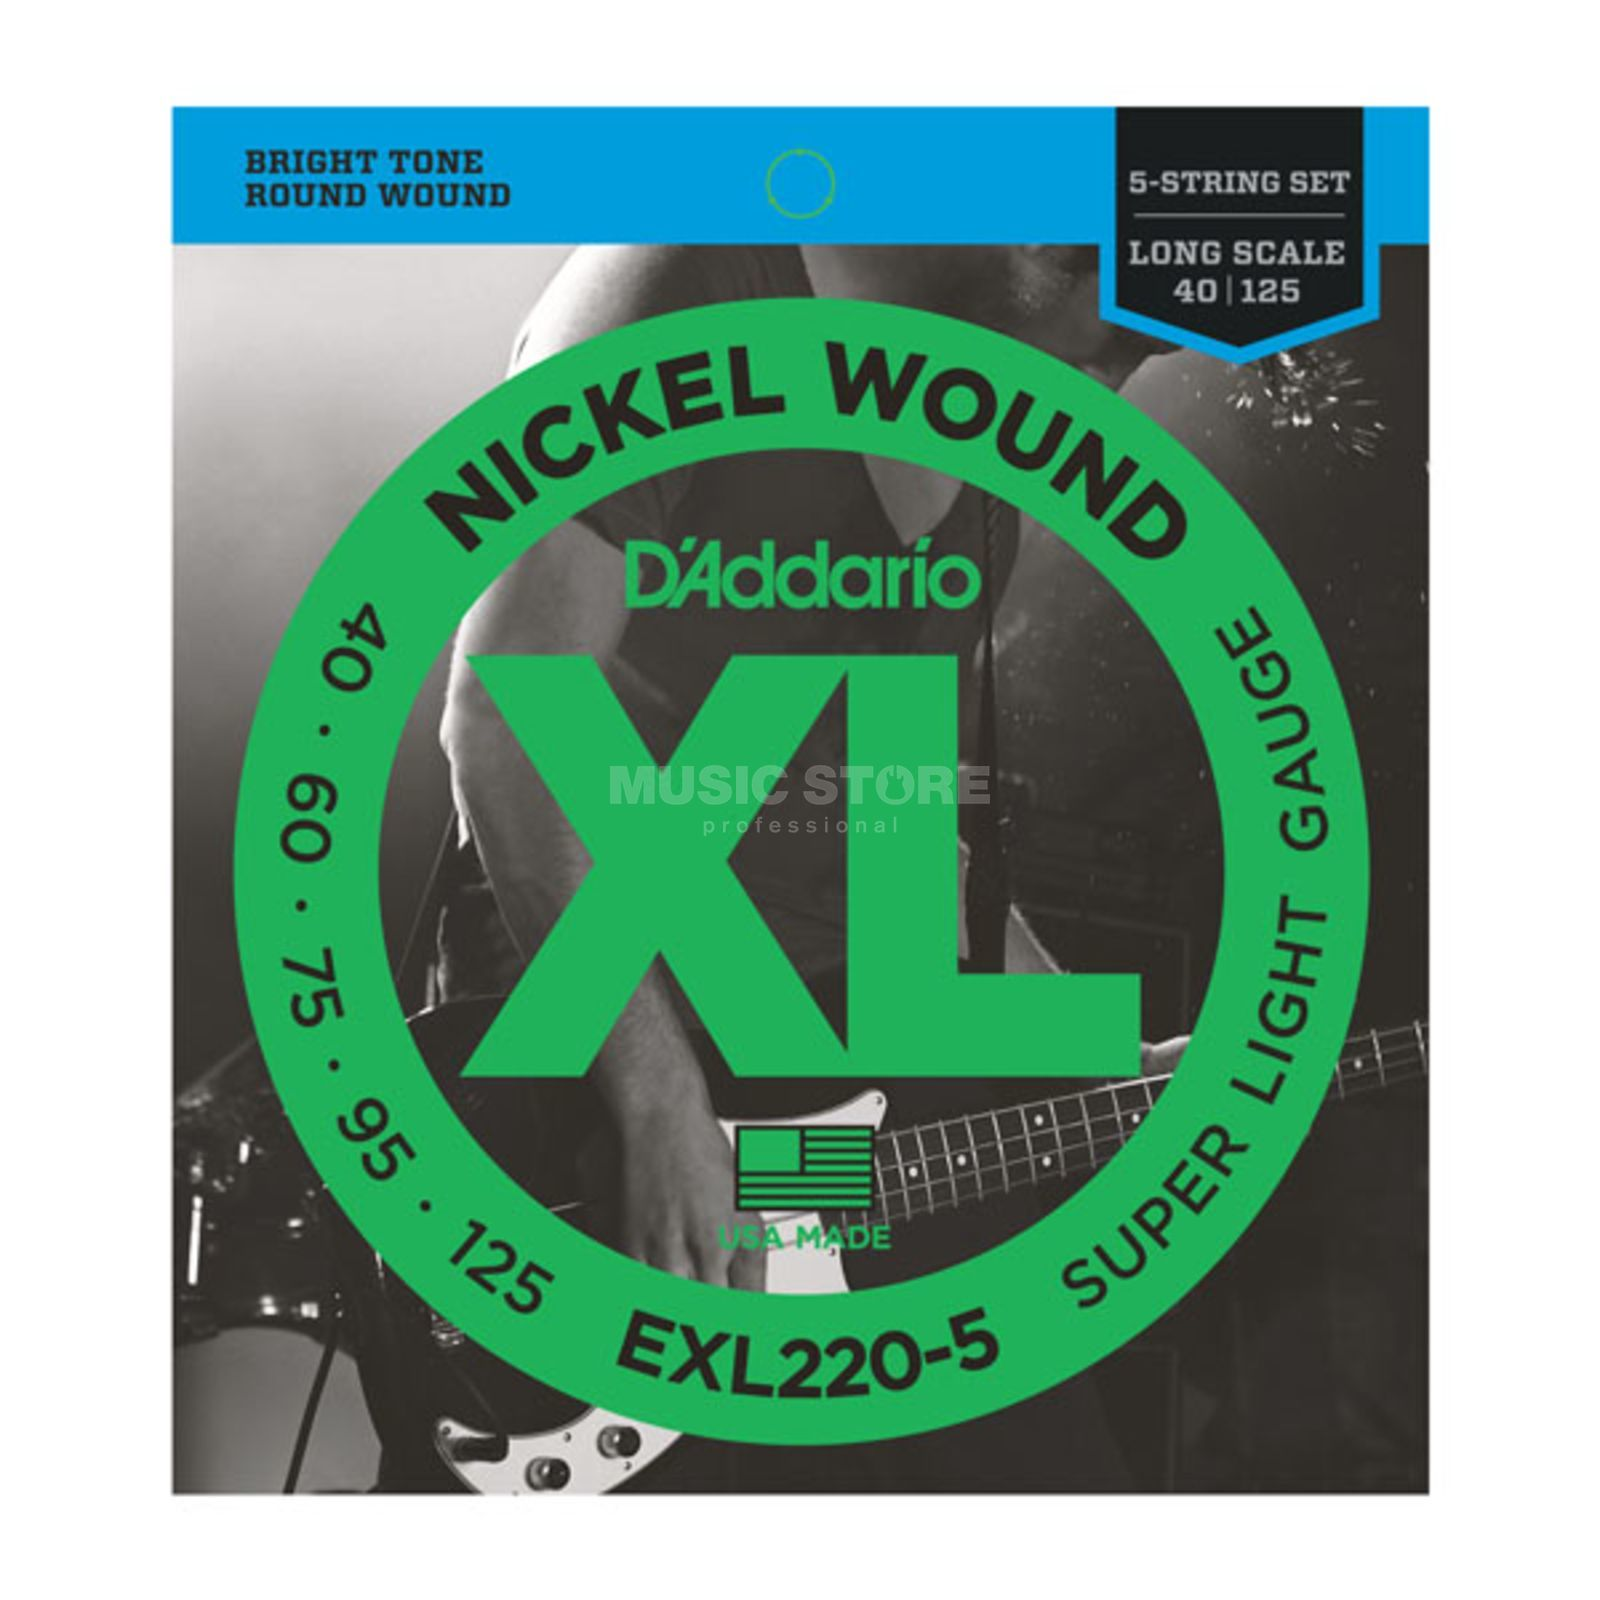 D'Addario Bass Strings XL Nickel 40-125 40-60-75-95-125, EXL220-5 Product Image